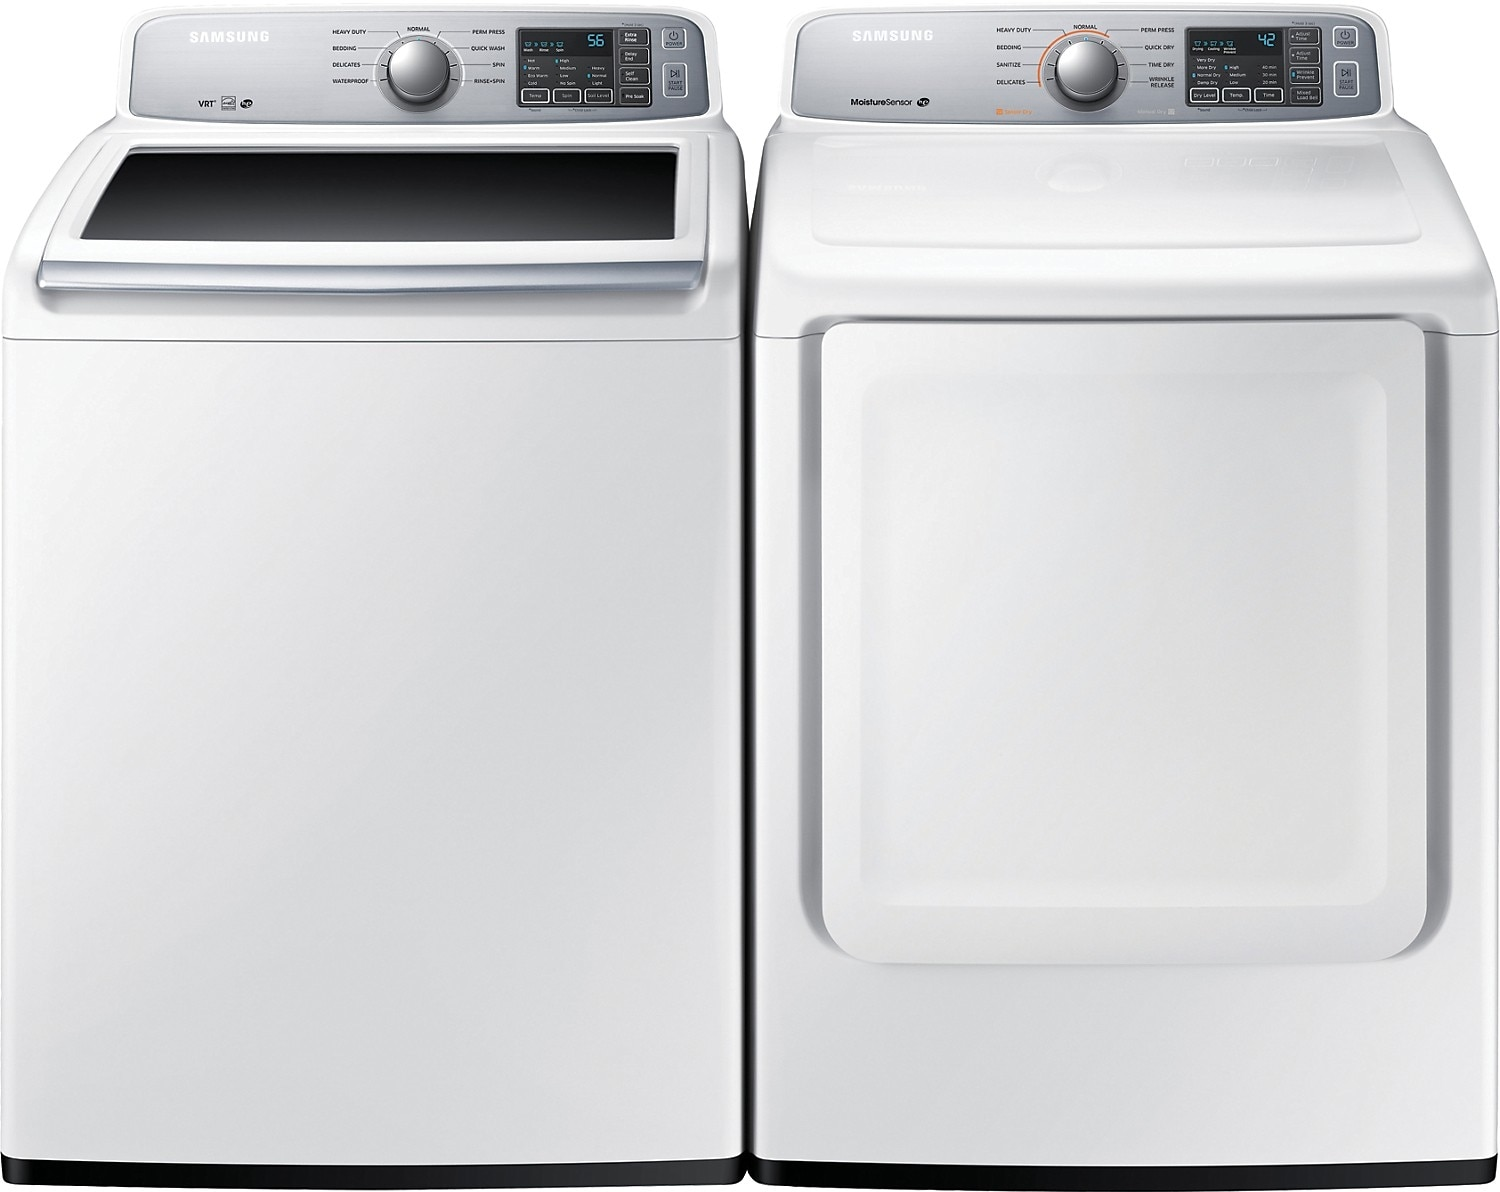 Samsung 5 2 Cu Ft Top Load Washer And 7 4 Cu Ft